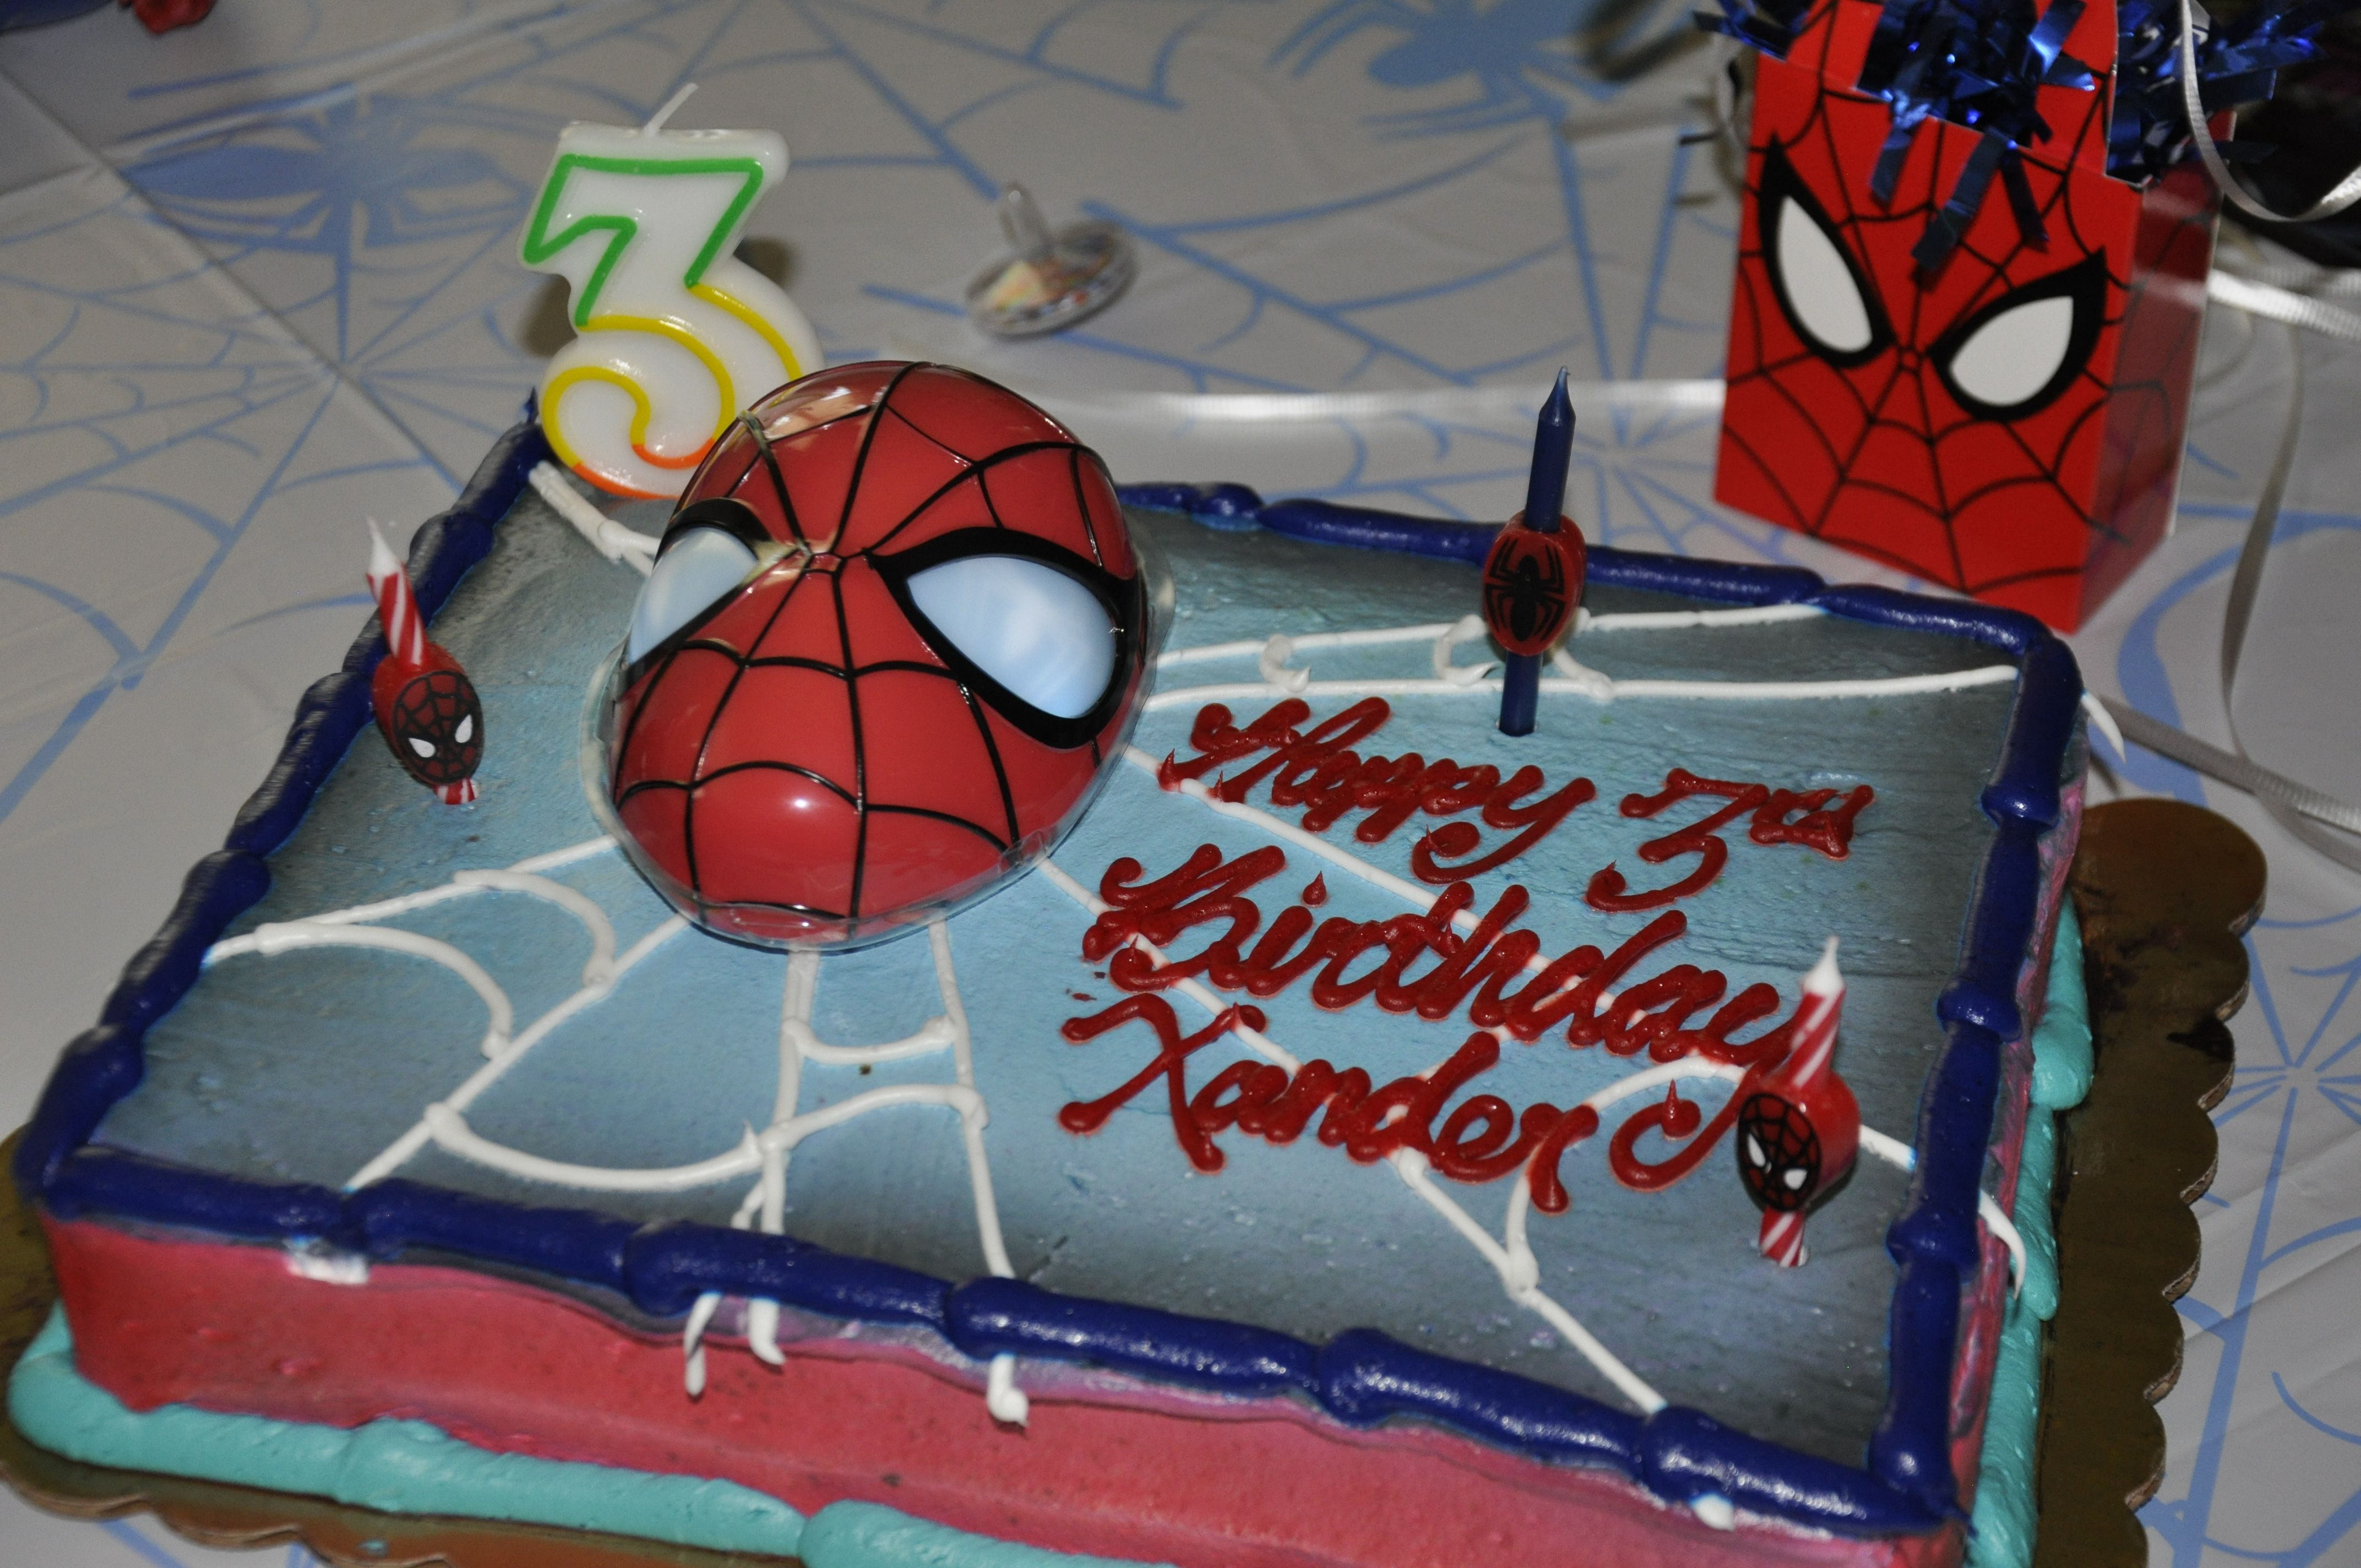 Pleasant Spider Man Cake From King Soopers With Images Cake Designs Funny Birthday Cards Online Barepcheapnameinfo